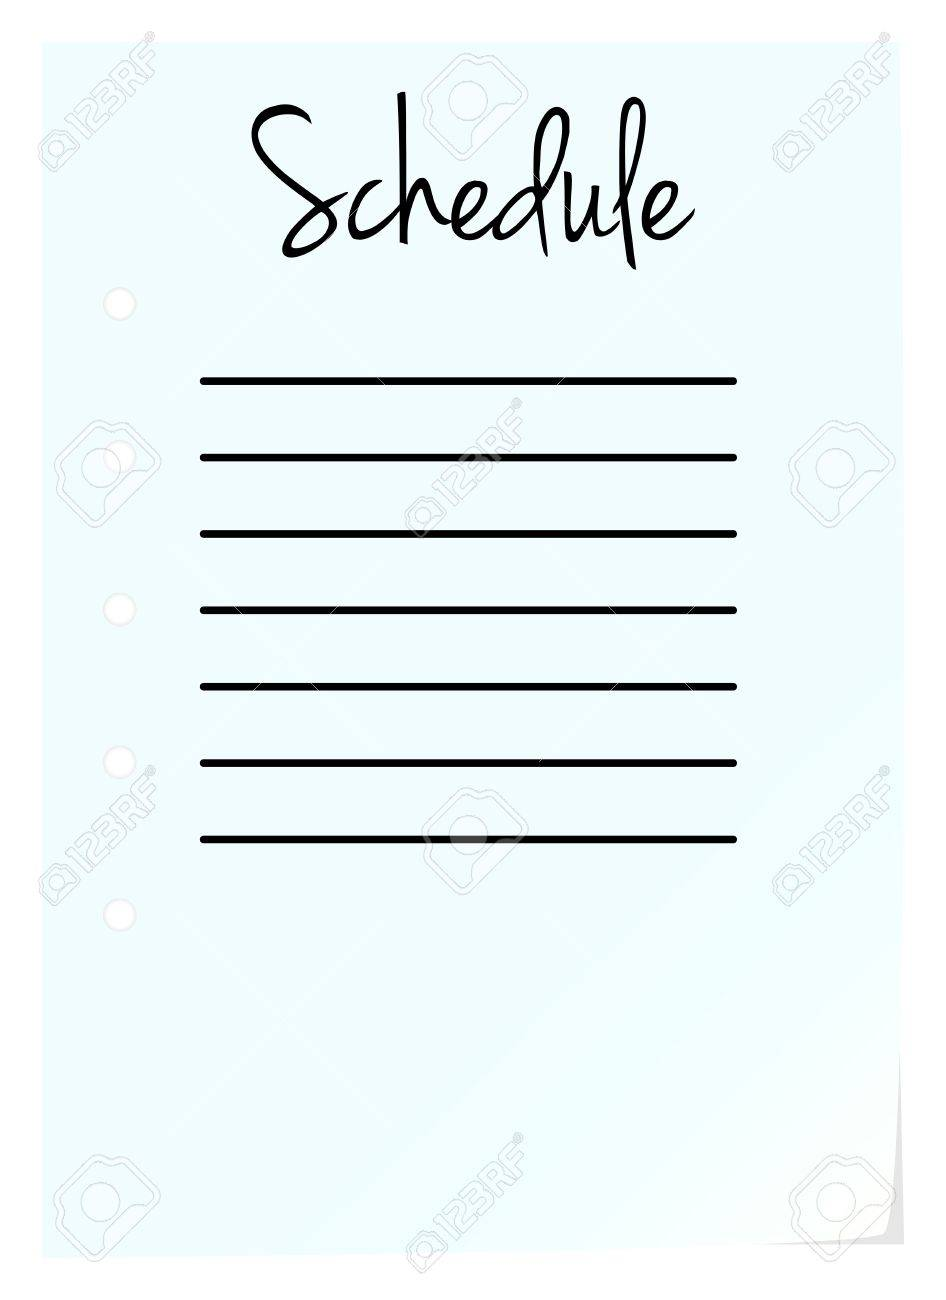 Schedule Page On White Background Stock Vector - 18142483